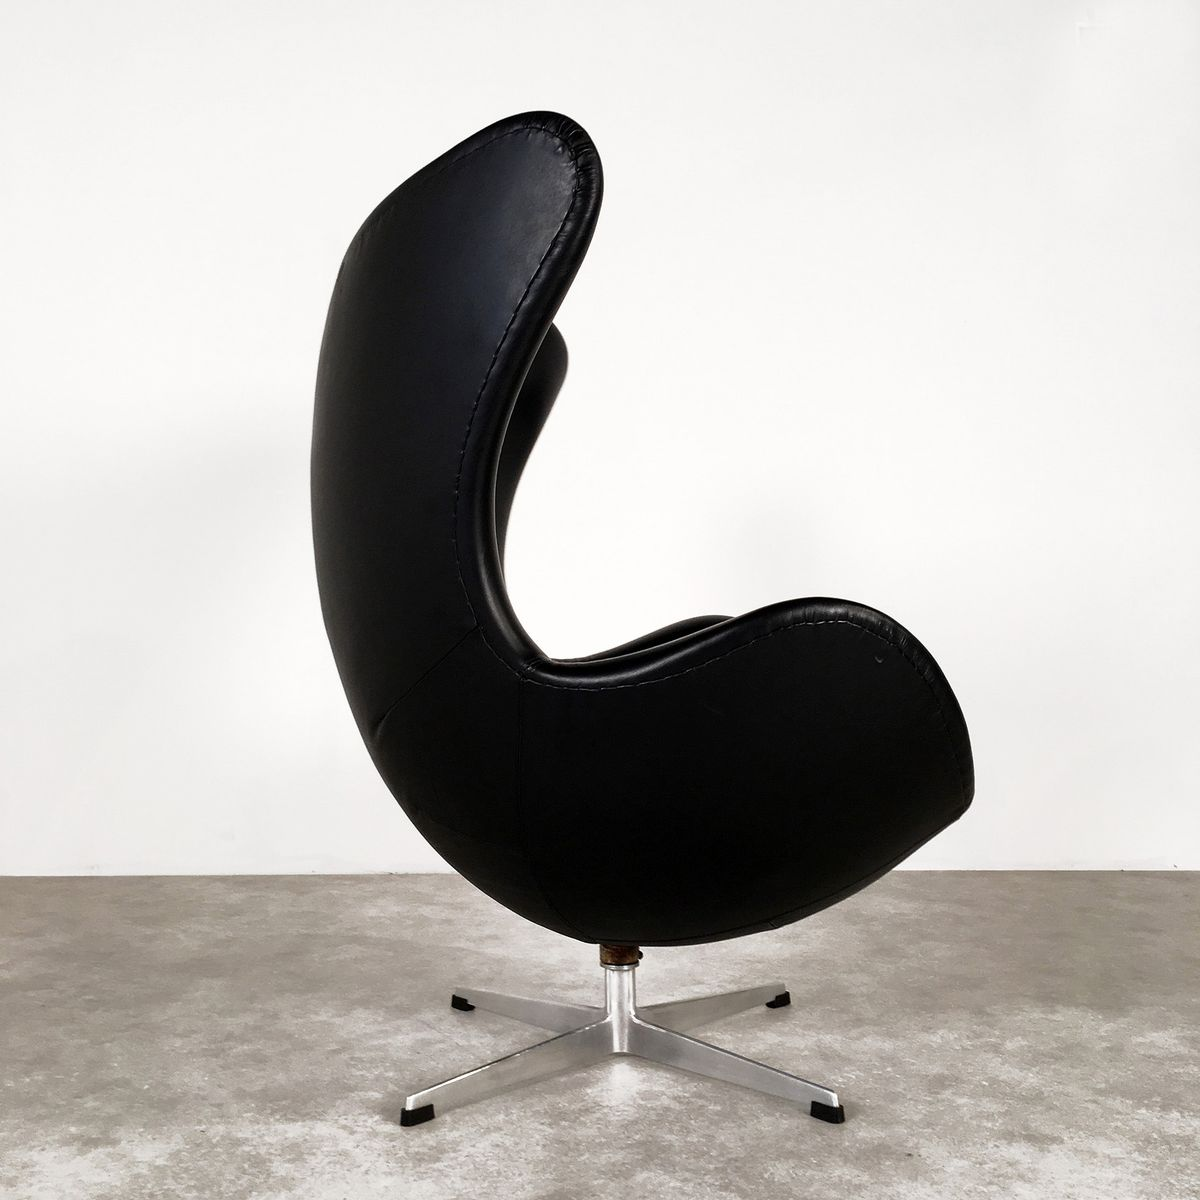 d nischer egg chair von arne jacobsen f r fritz hansen. Black Bedroom Furniture Sets. Home Design Ideas